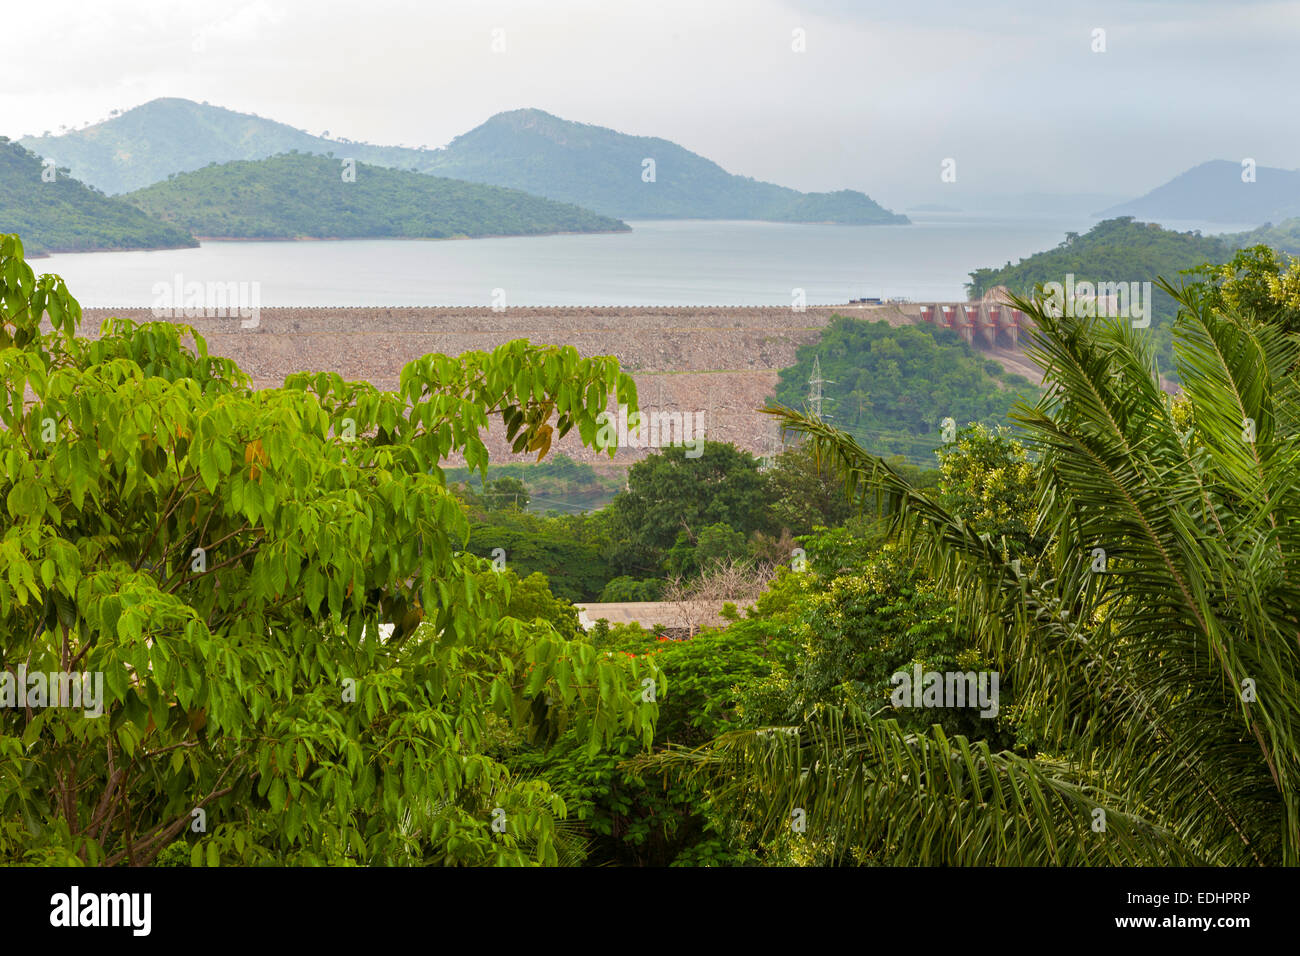 Altes Holz Kanu Lake Volta Ghana Stockfotos And Lake Volta Ghana Bilder Alamy